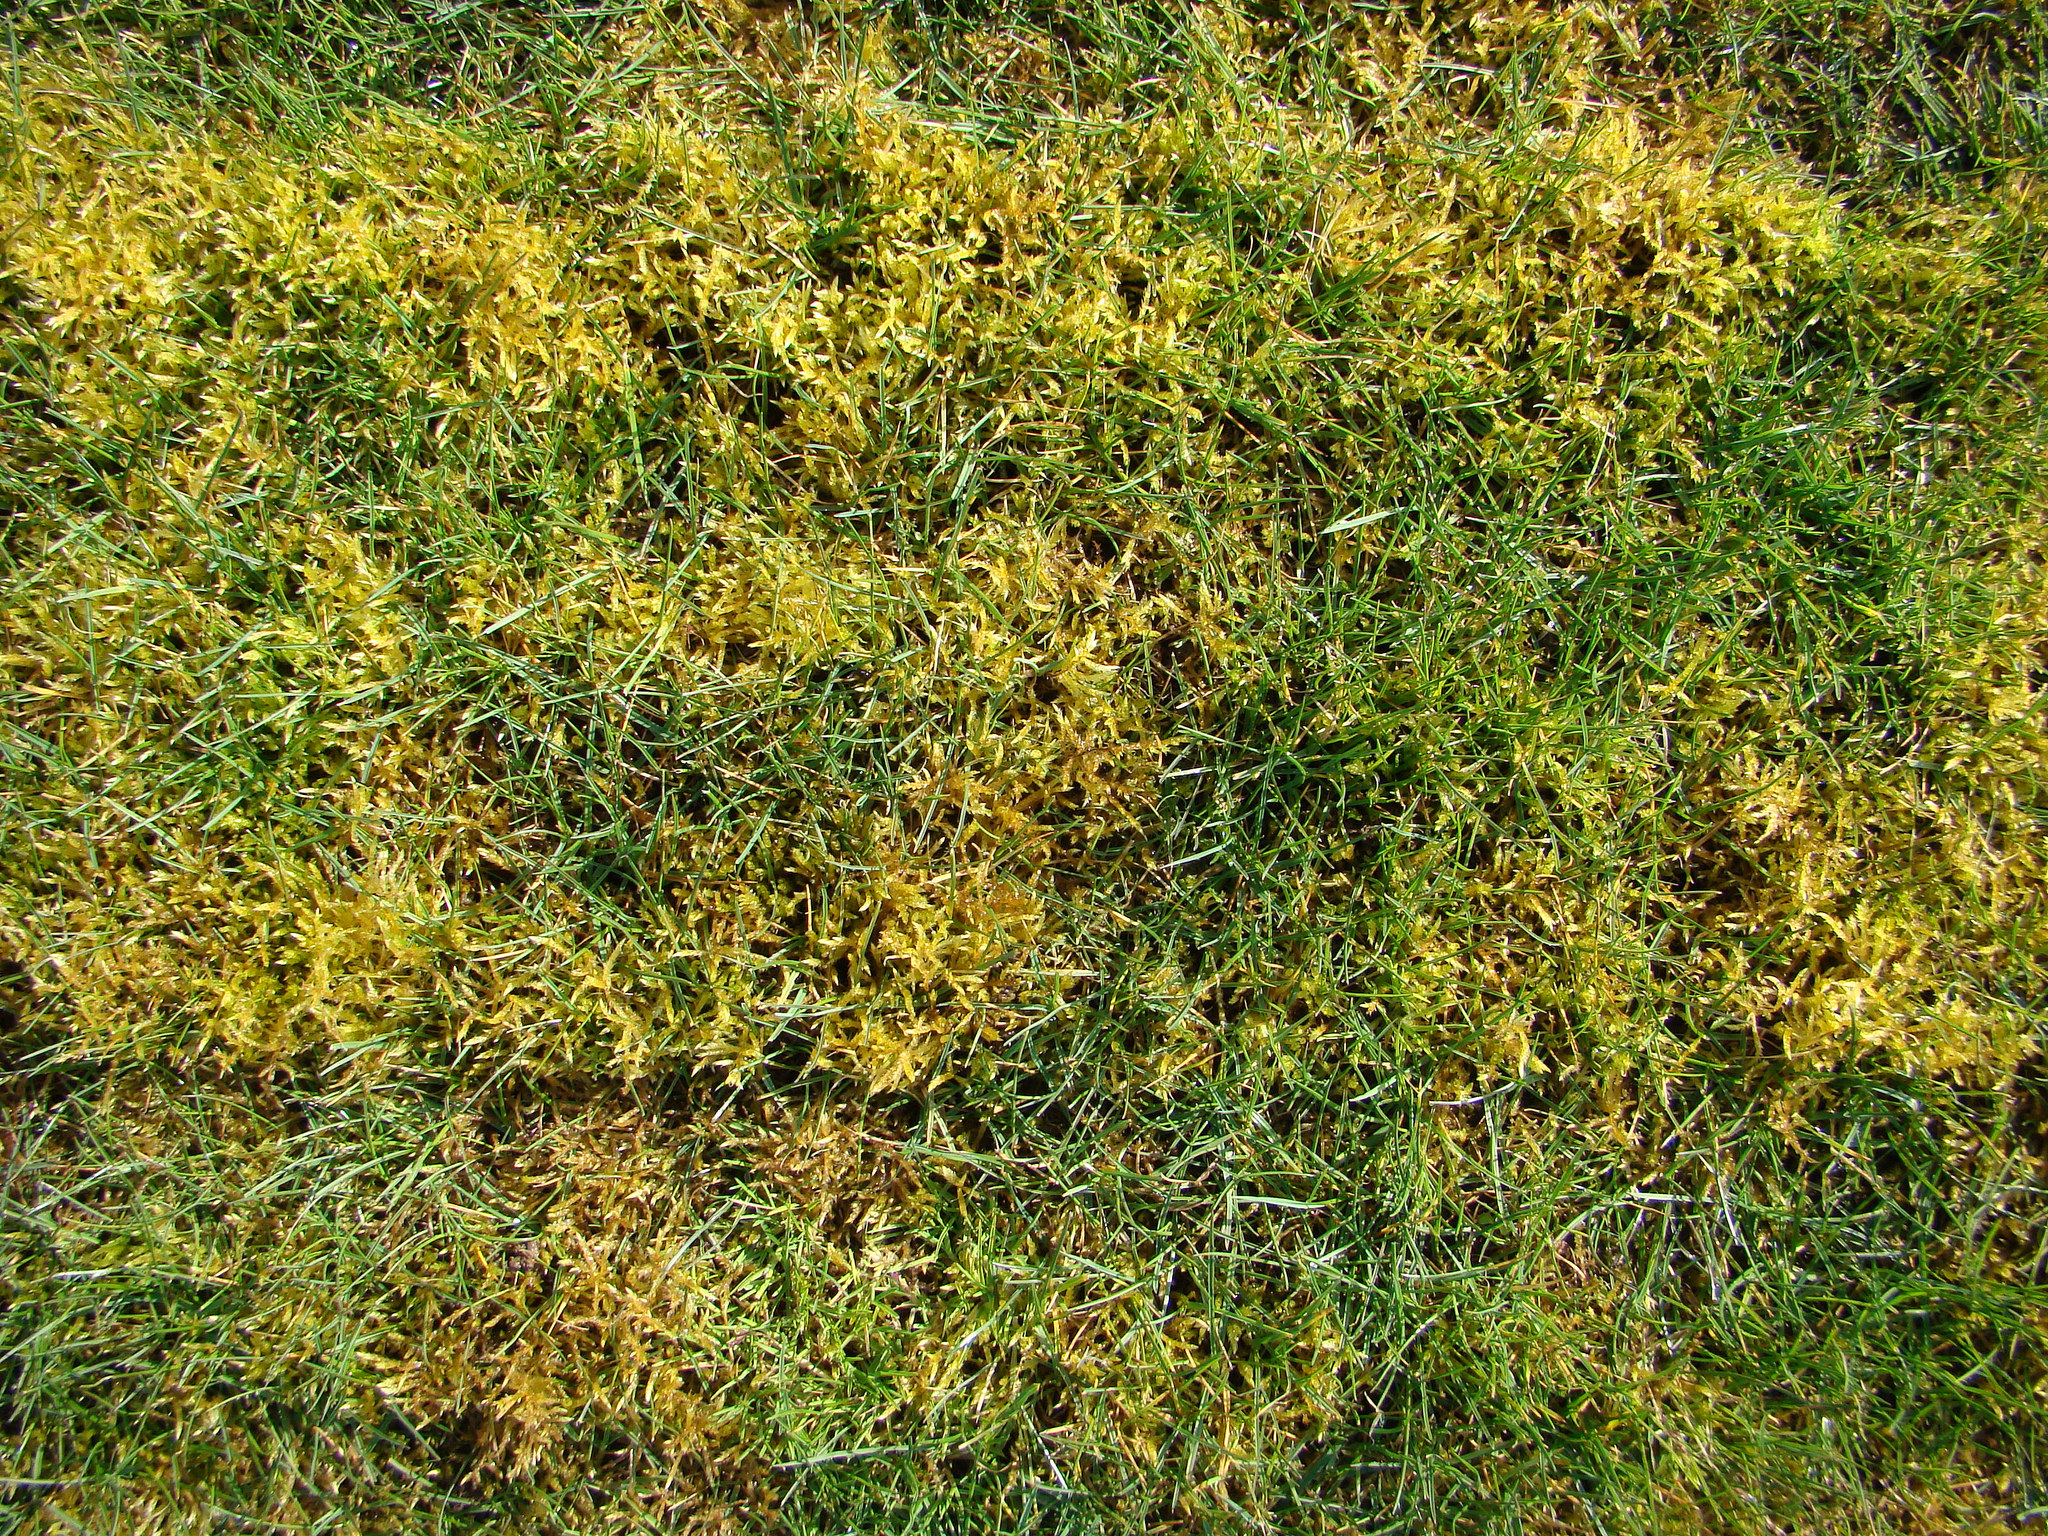 Control moss in the lawn by keeping grass healthy